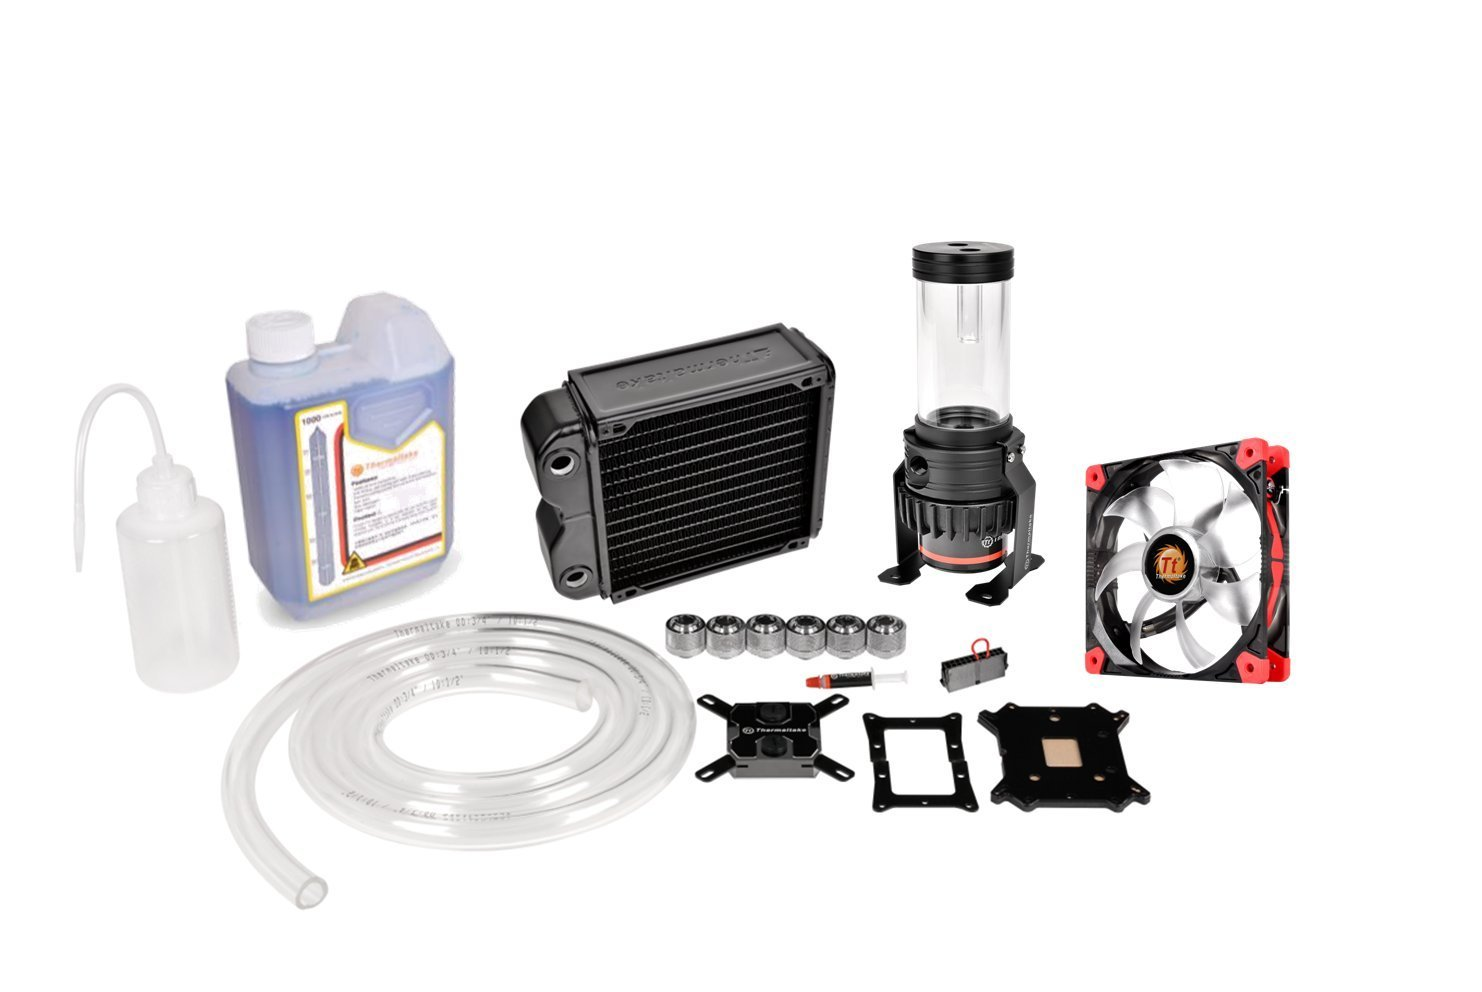 THERMALTAKE PACIFIC RL140 LIQUID COOLING KIT